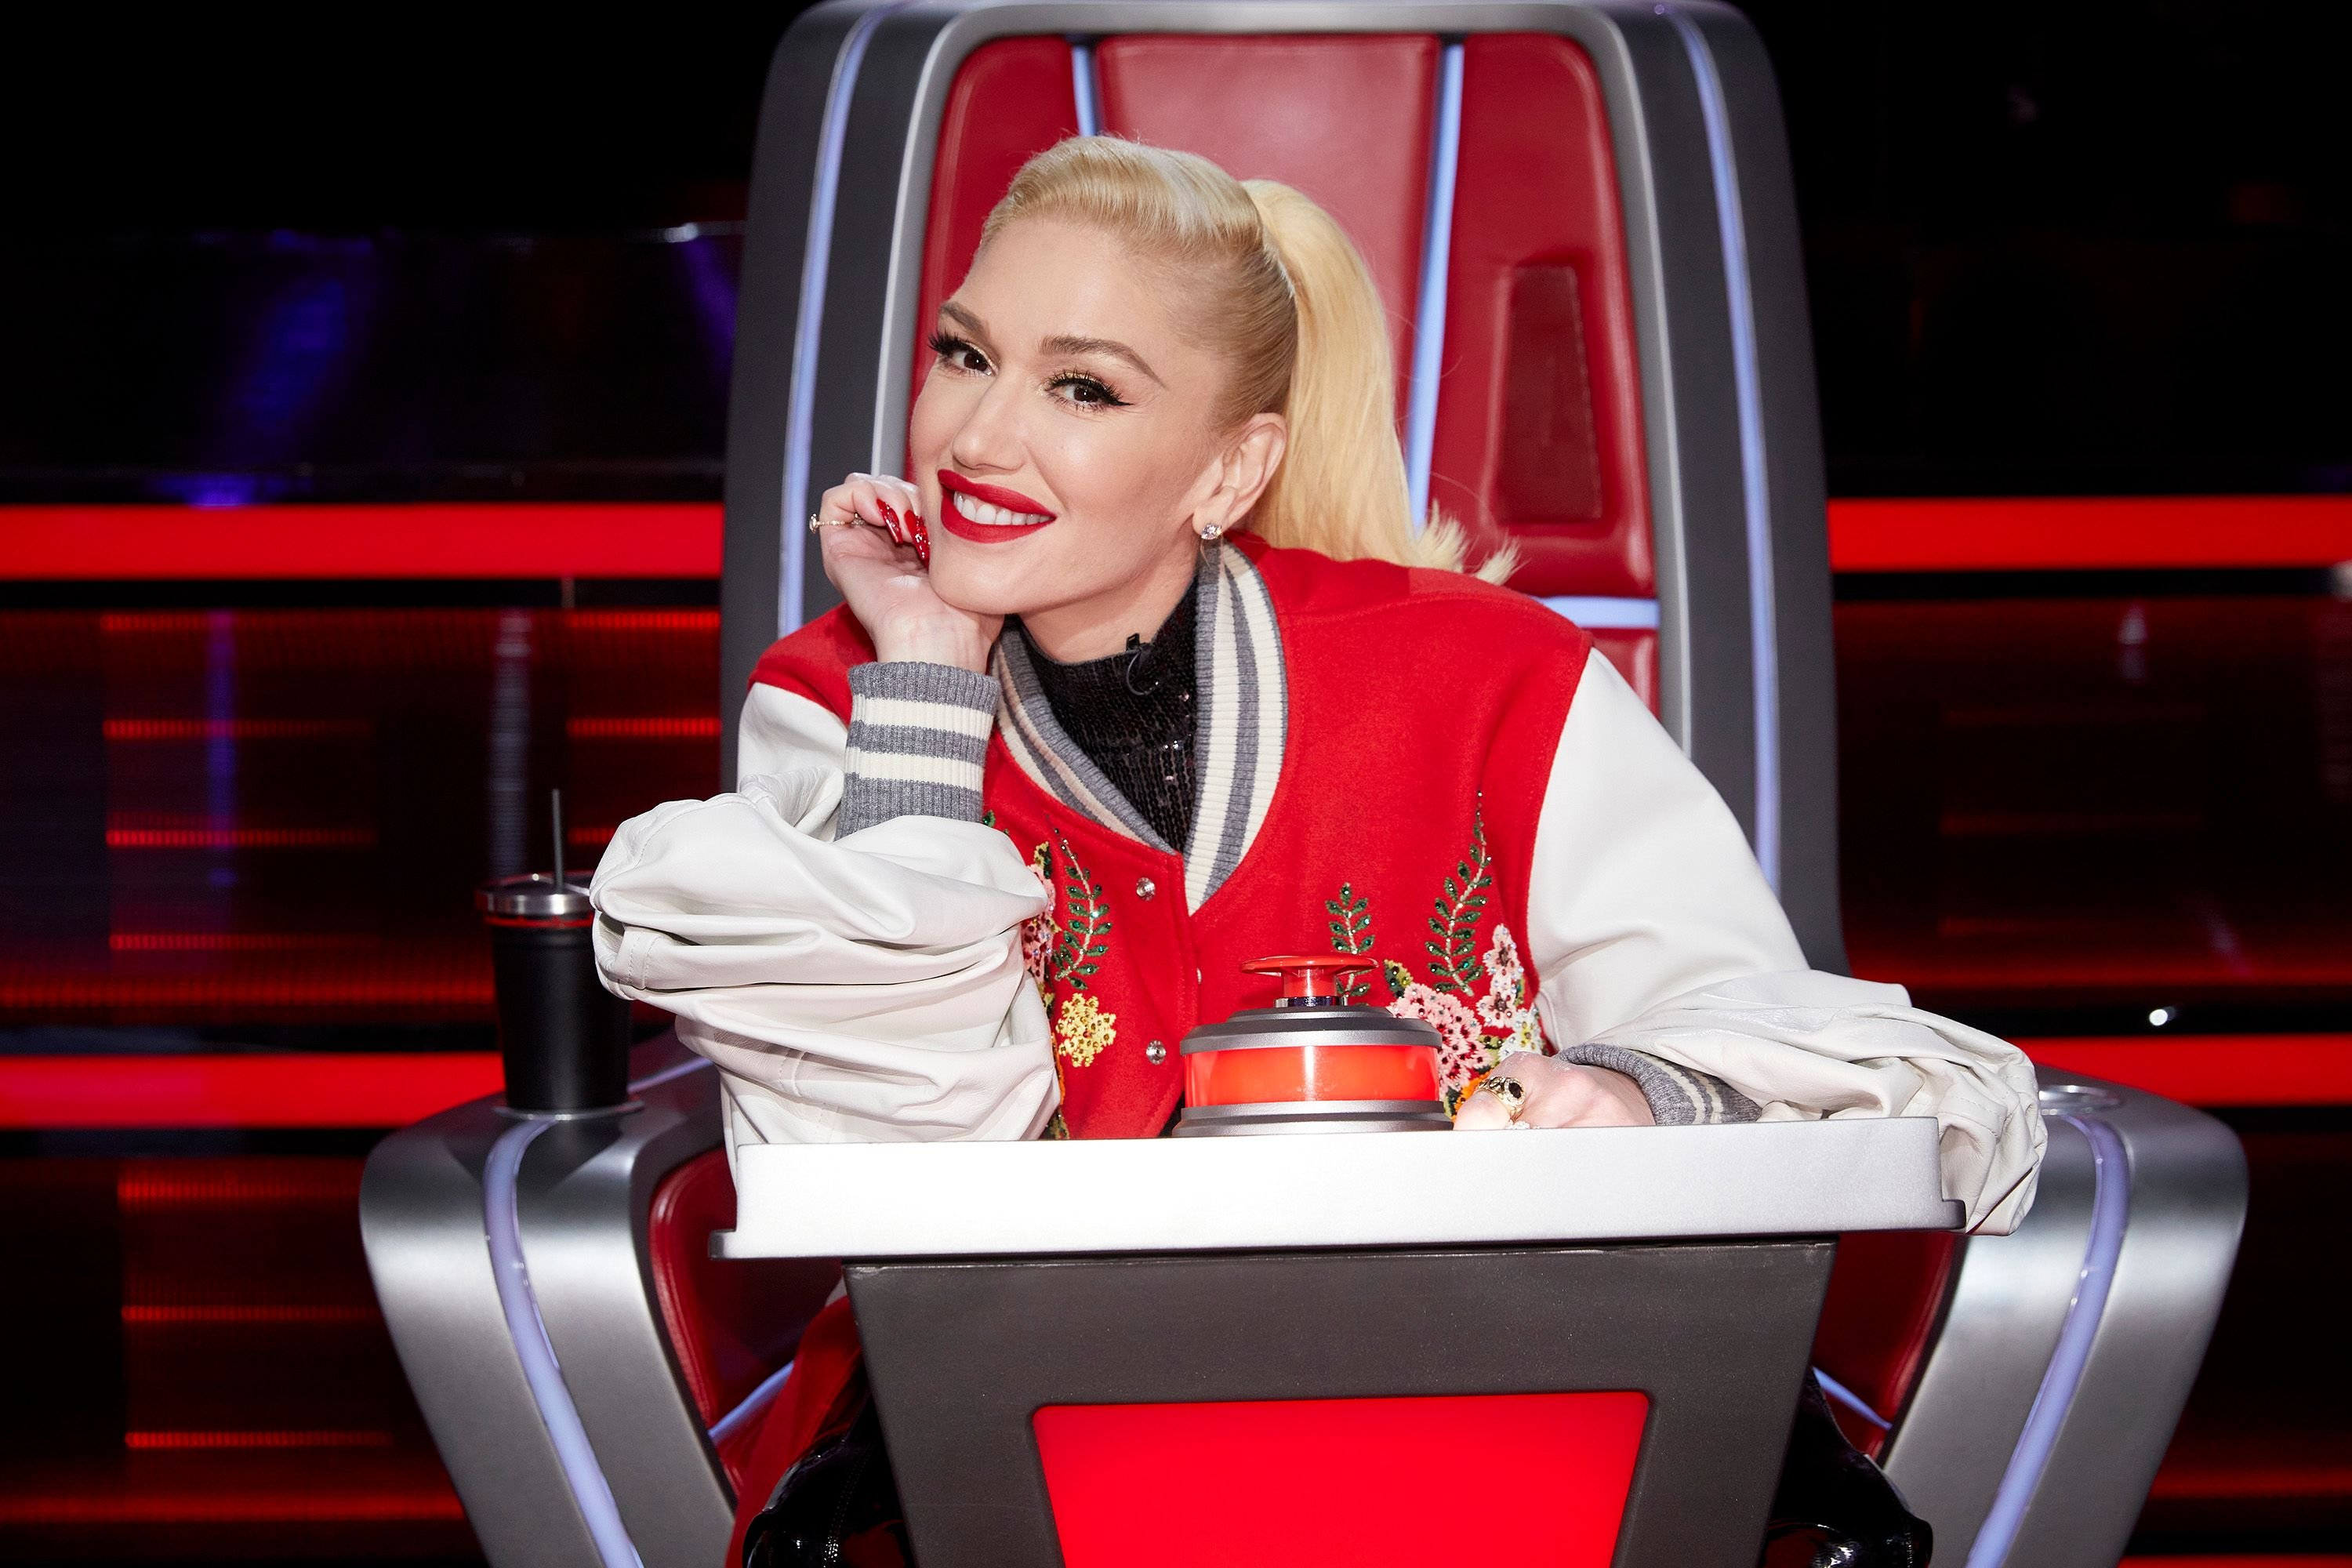 """Gwen Stefani on set for Season 19 of """"The Voice"""" 